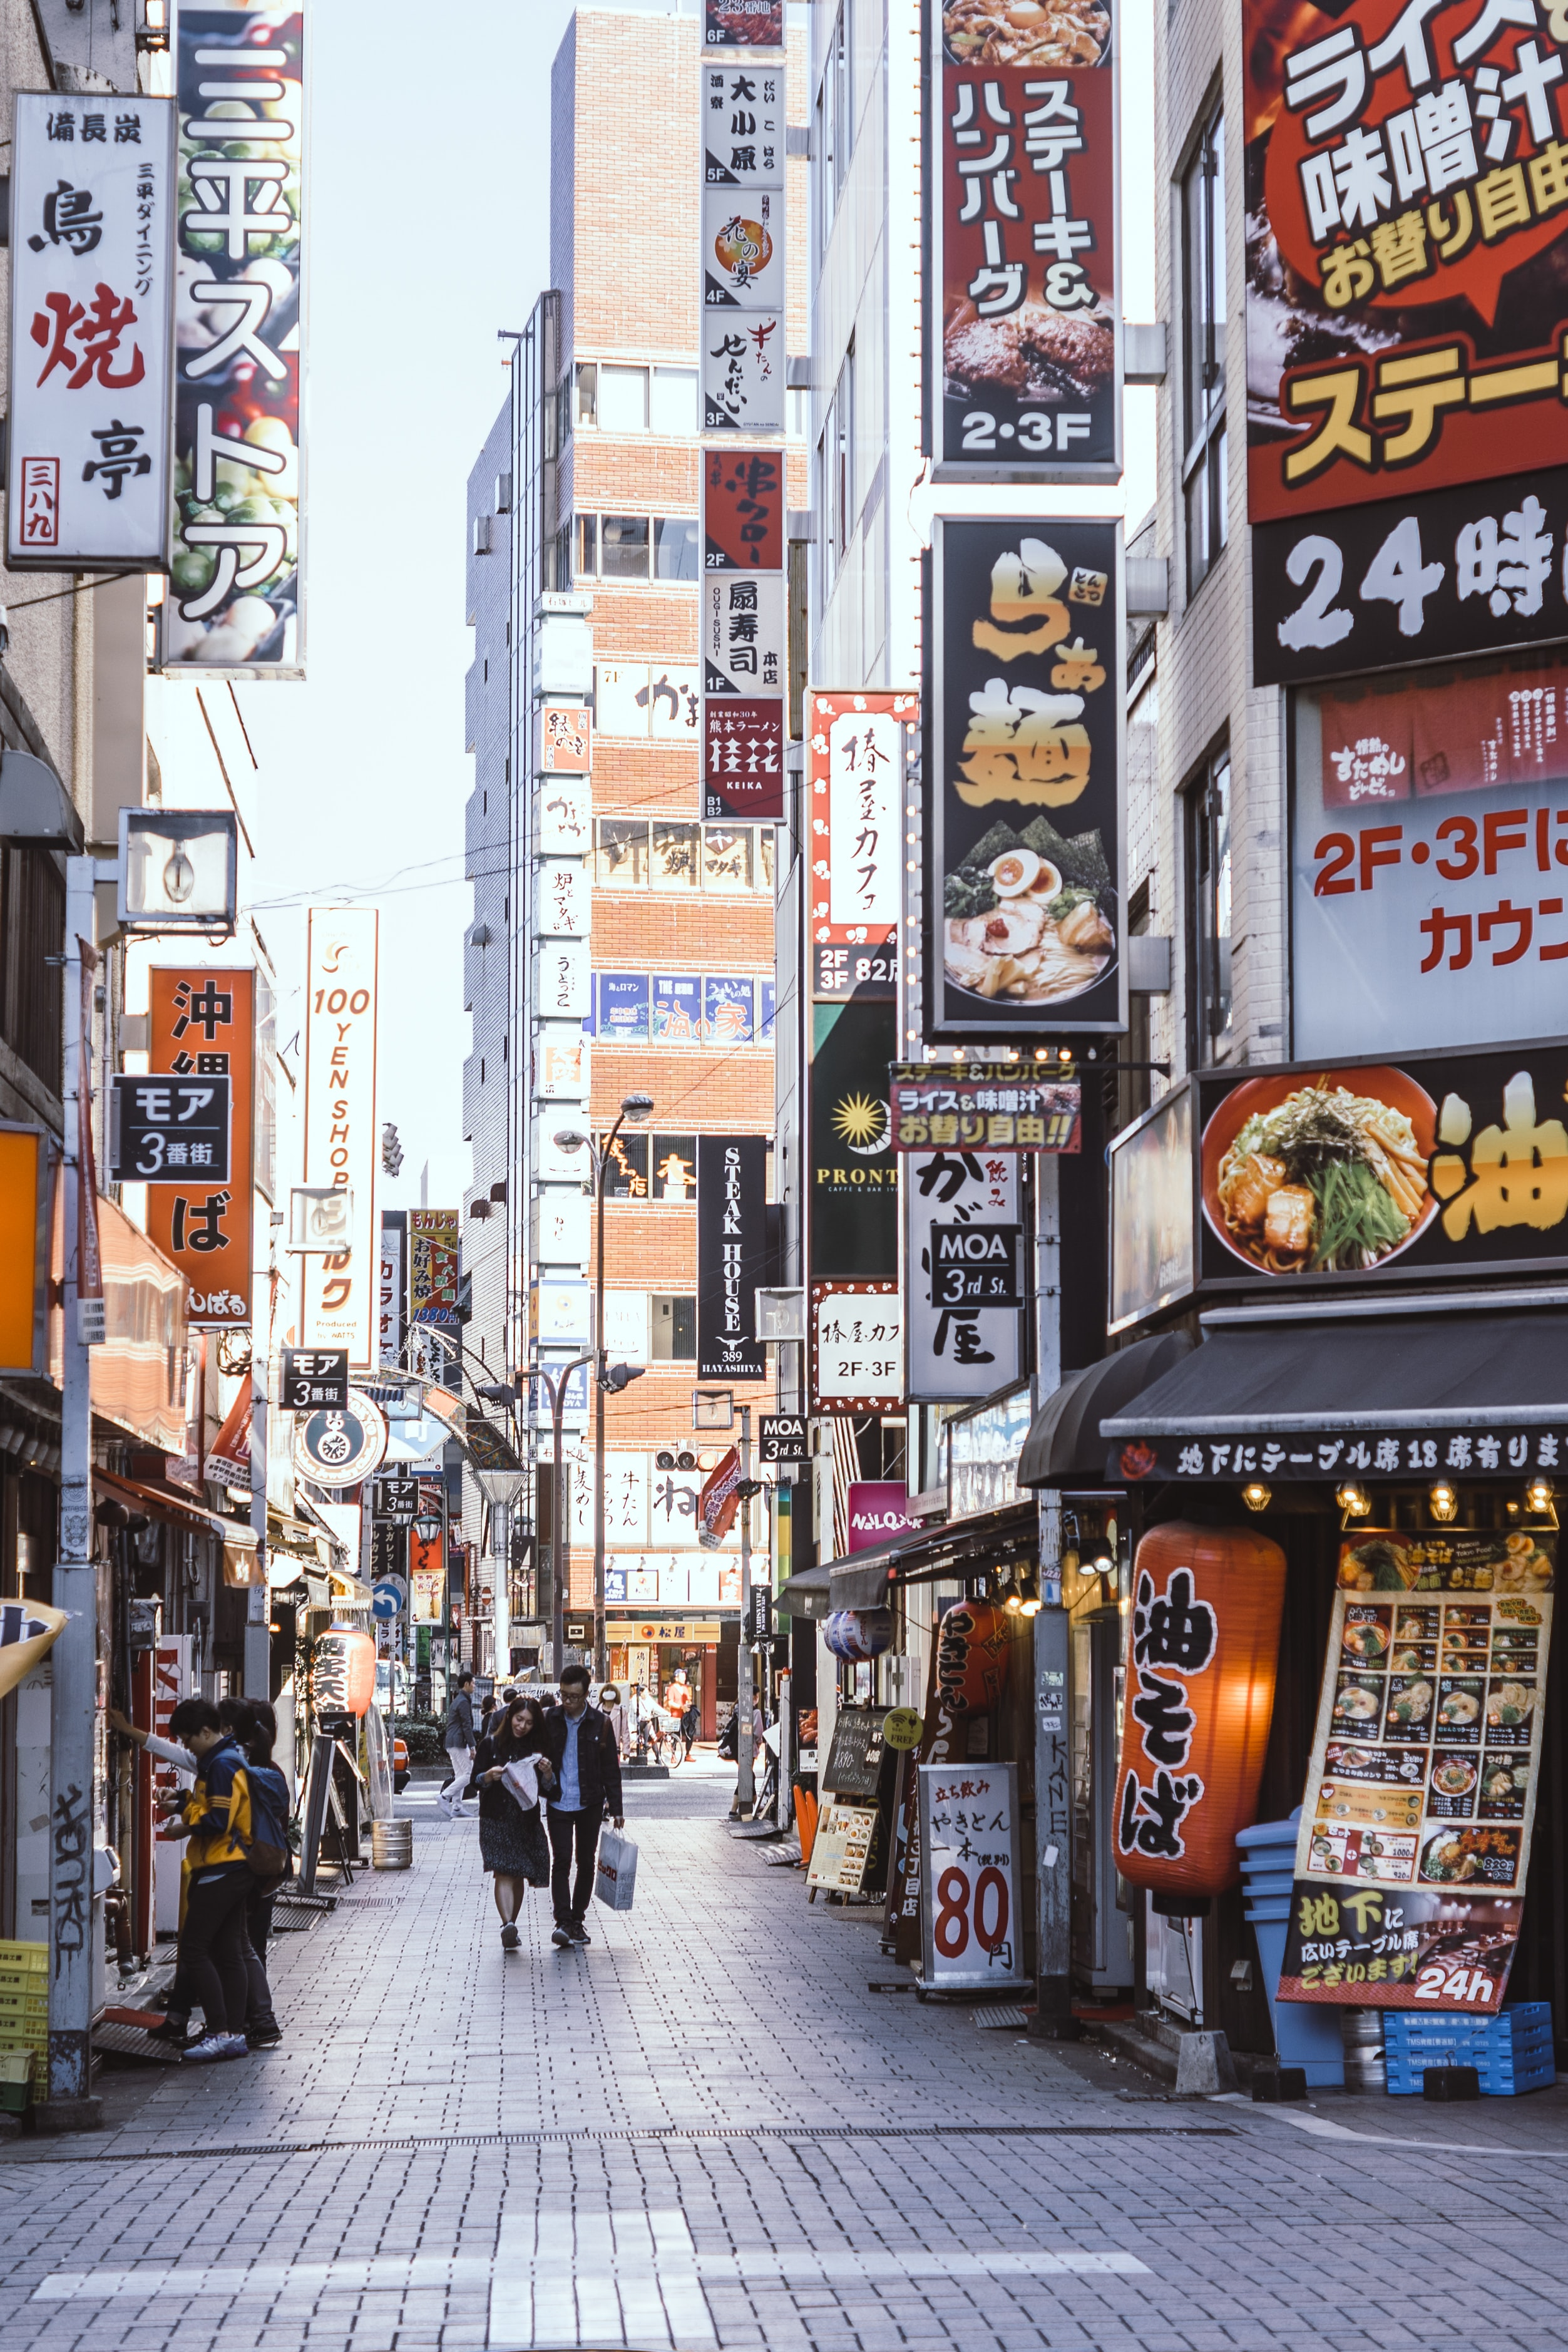 Shot of a Shinjuku street filled with restaurants and signs during the afternoon